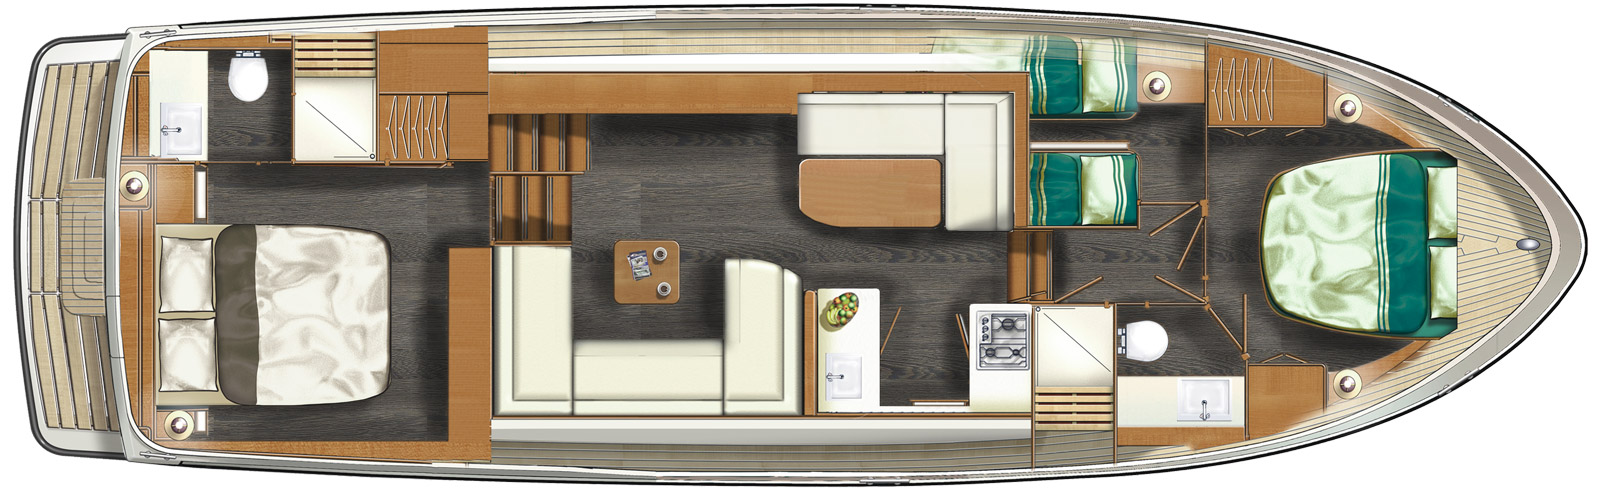 Layout Grand Sturdy 45.0 AC